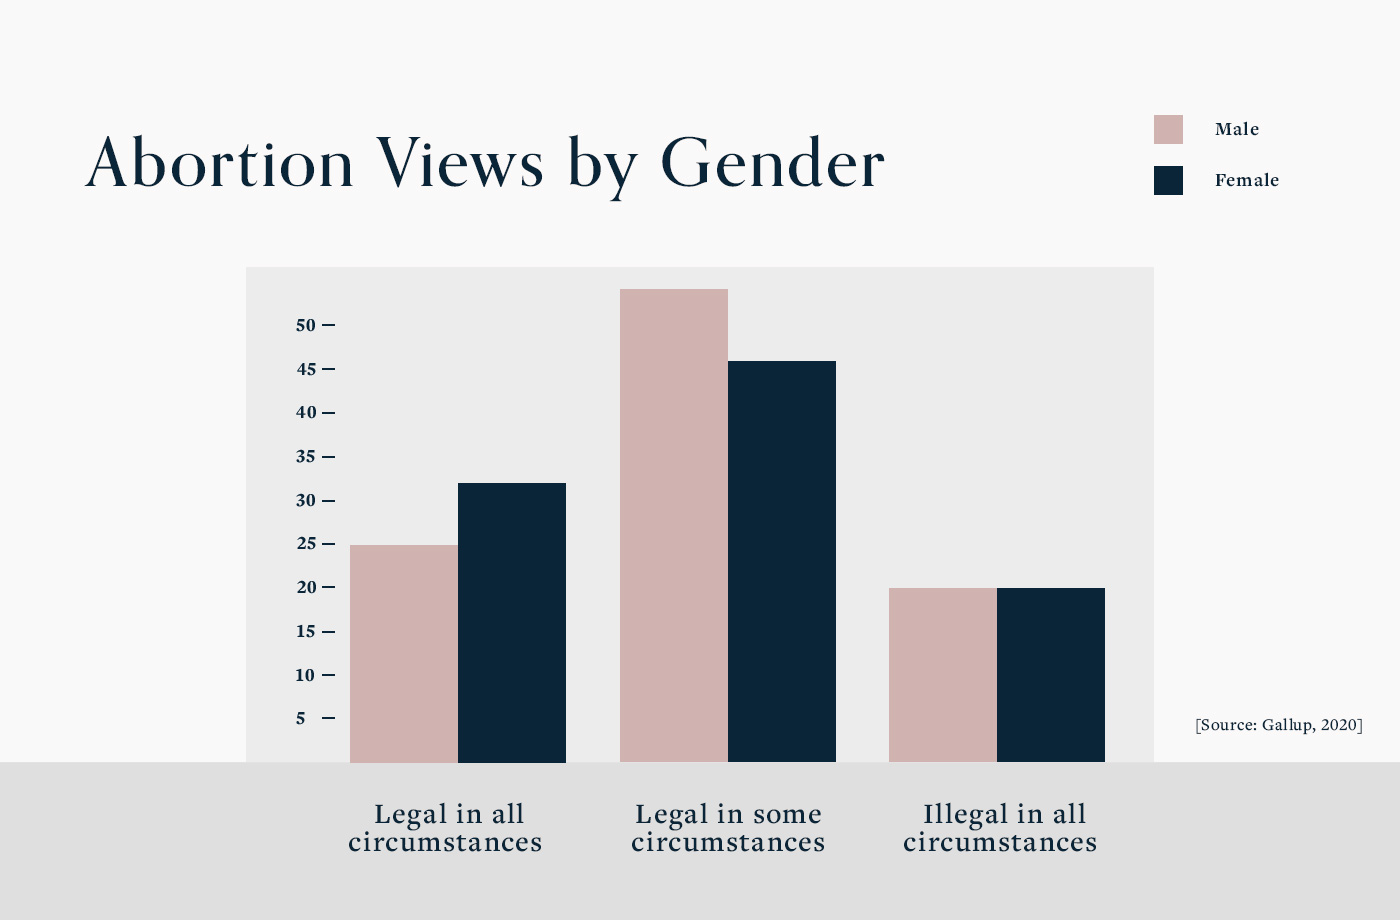 abortion views by gender graphic